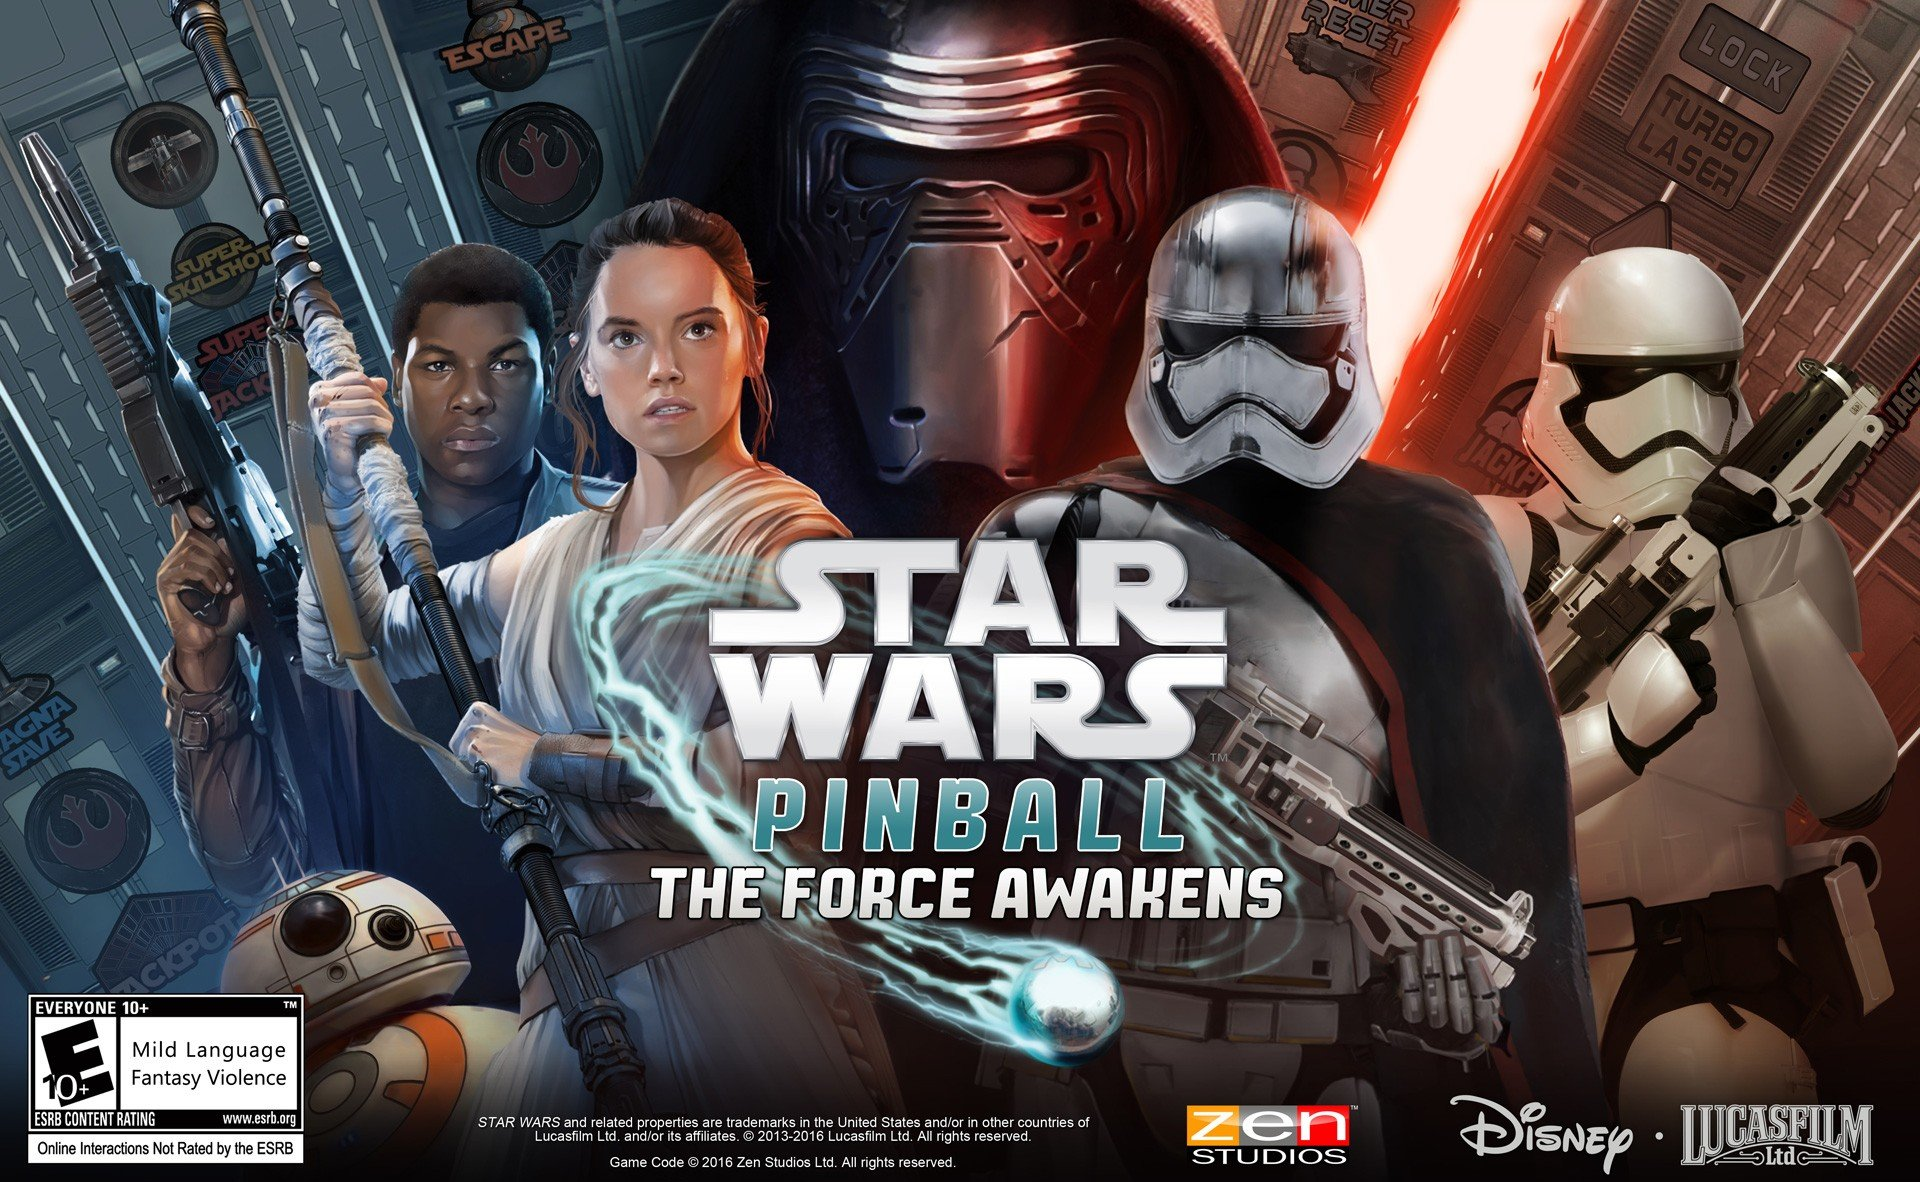 Star Wars: The Force Awakens Comes to Zen Pinball with Two Movie-Inspired Tables